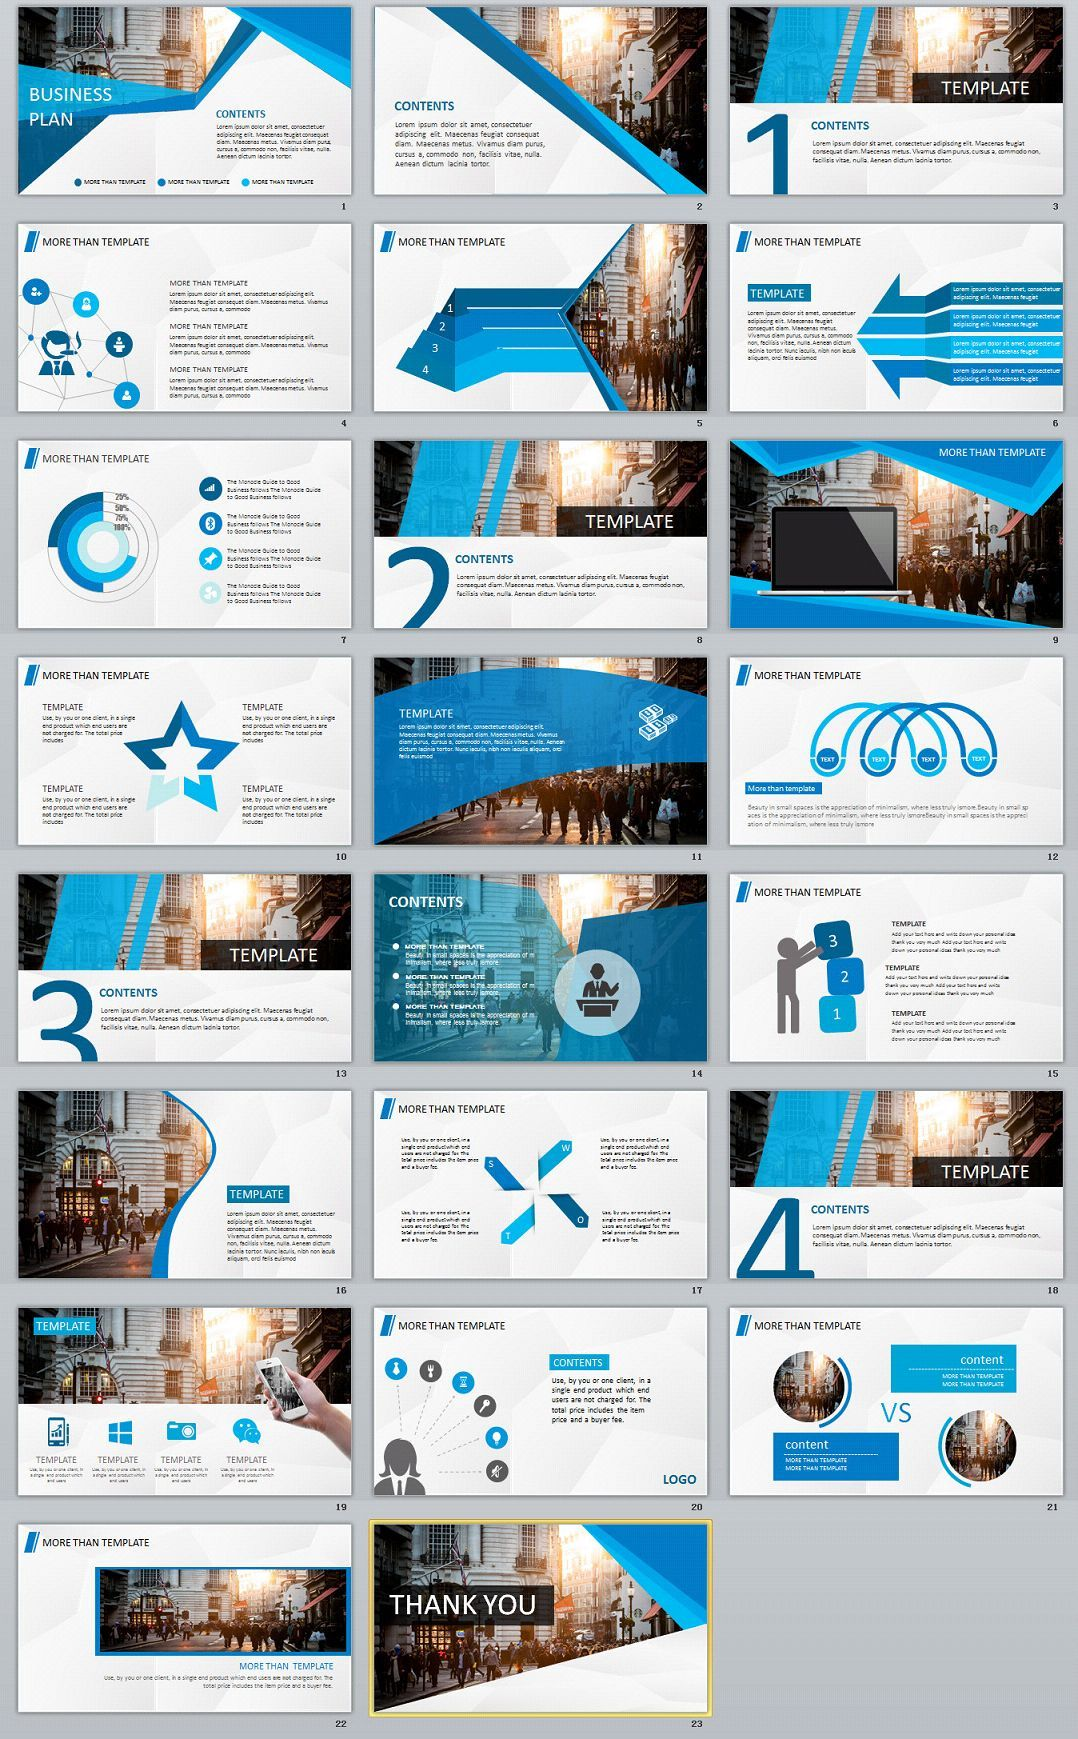 23 Blue Business Plan Powerpoint Template Powerpoint Design